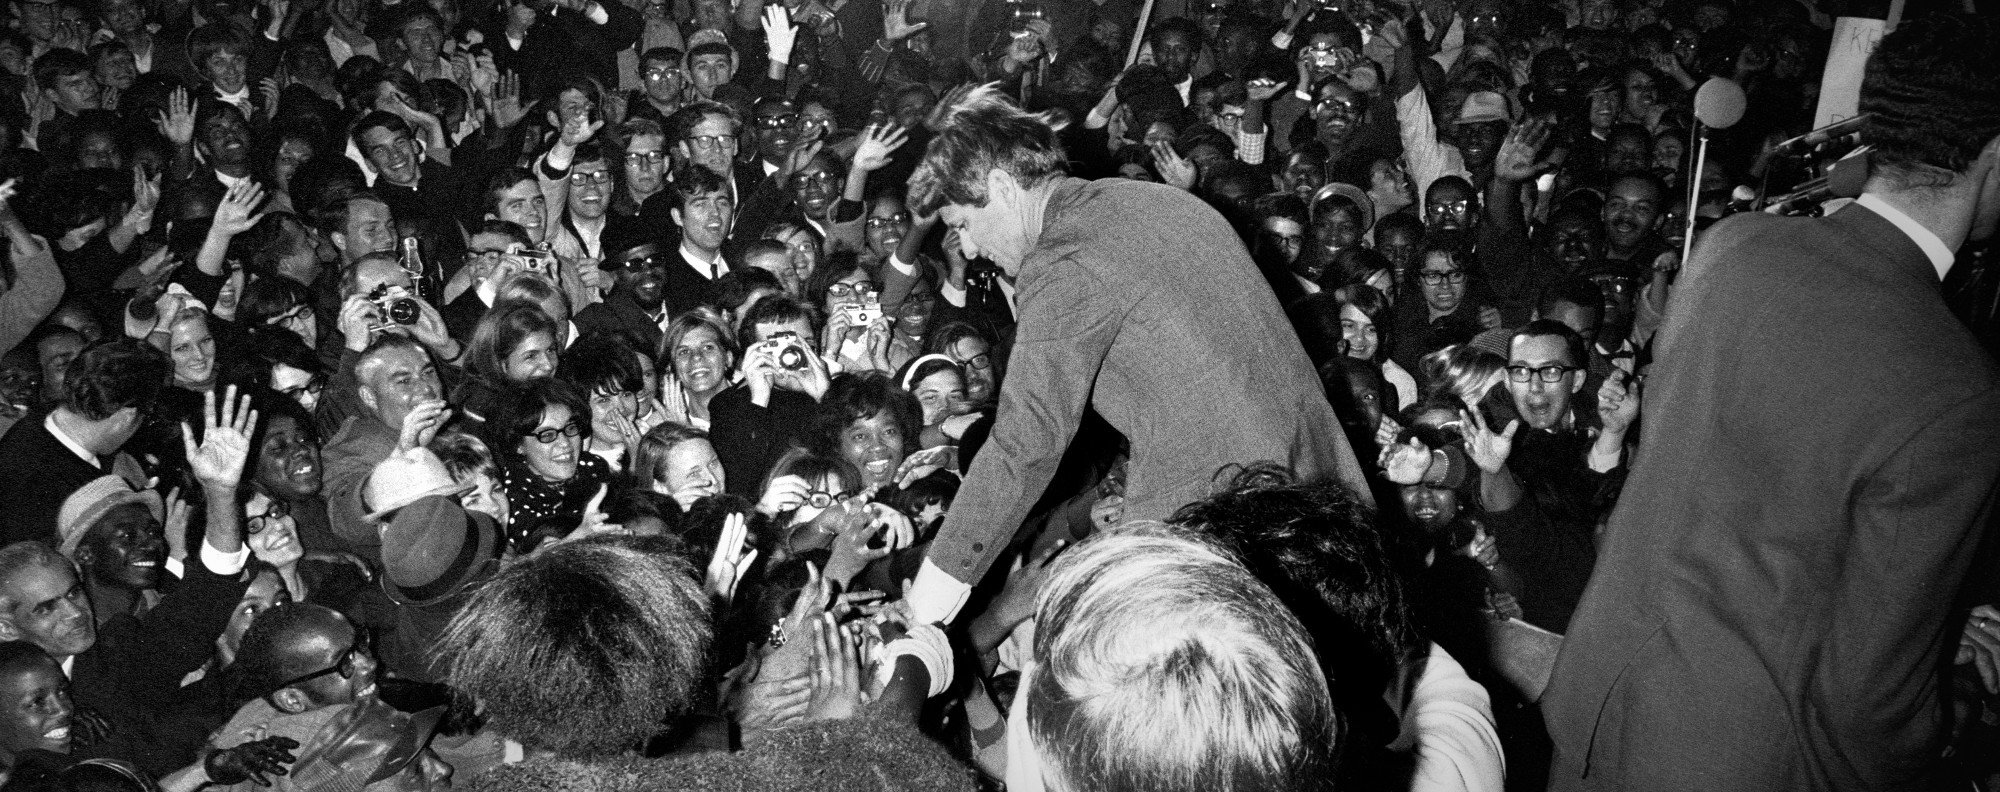 Presidential candidate Robert F. Kennedy greets crowds in Washington, DC in April 1968. Picture: The Washington Post